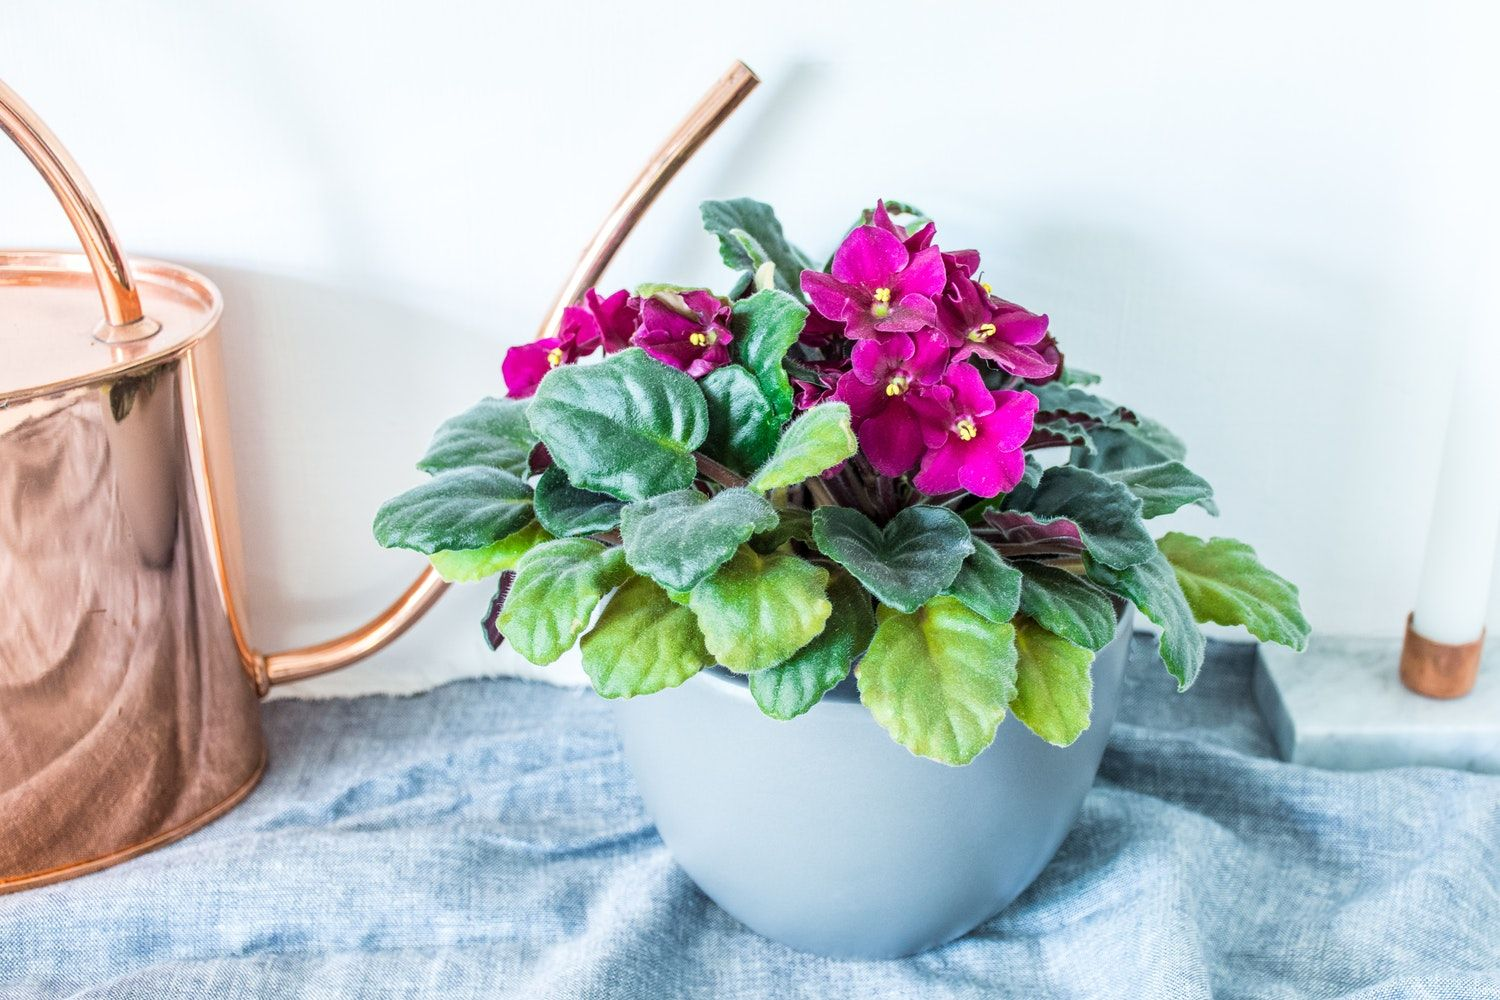 The Adaptable & Colorful Houseplant That Can Bloom All